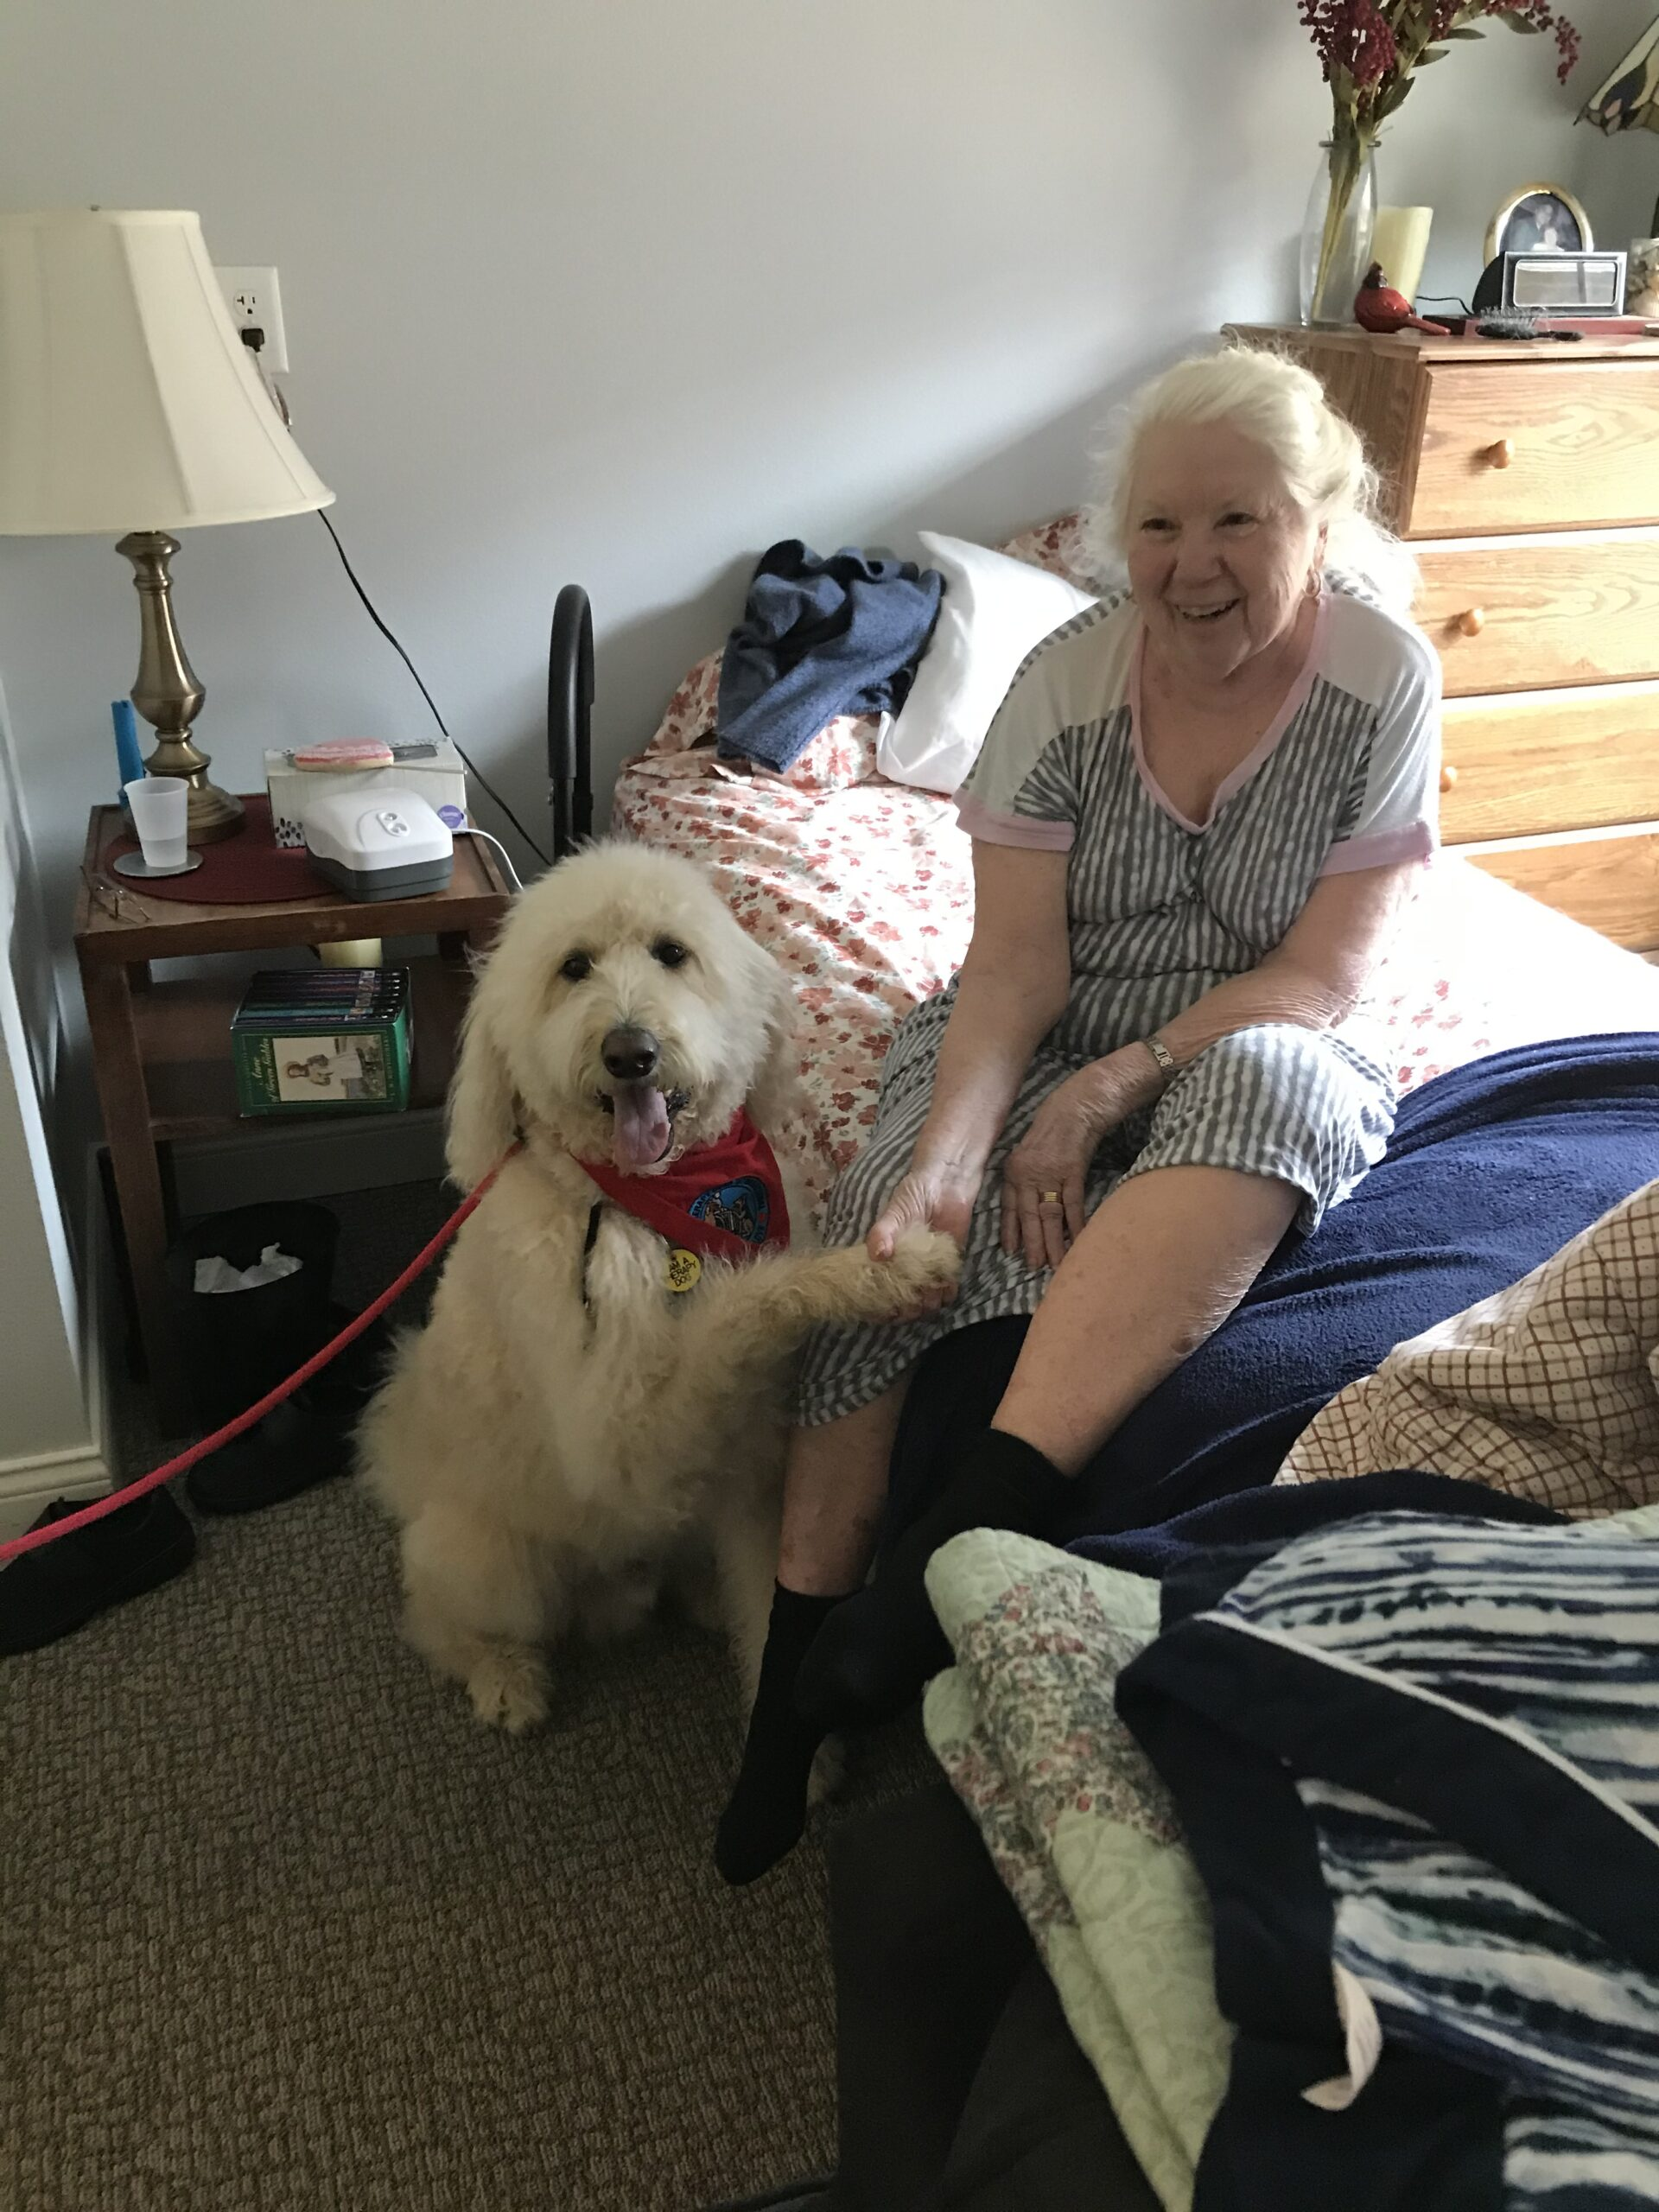 Elaine with a wake up call from Dexter the Therapy Dog